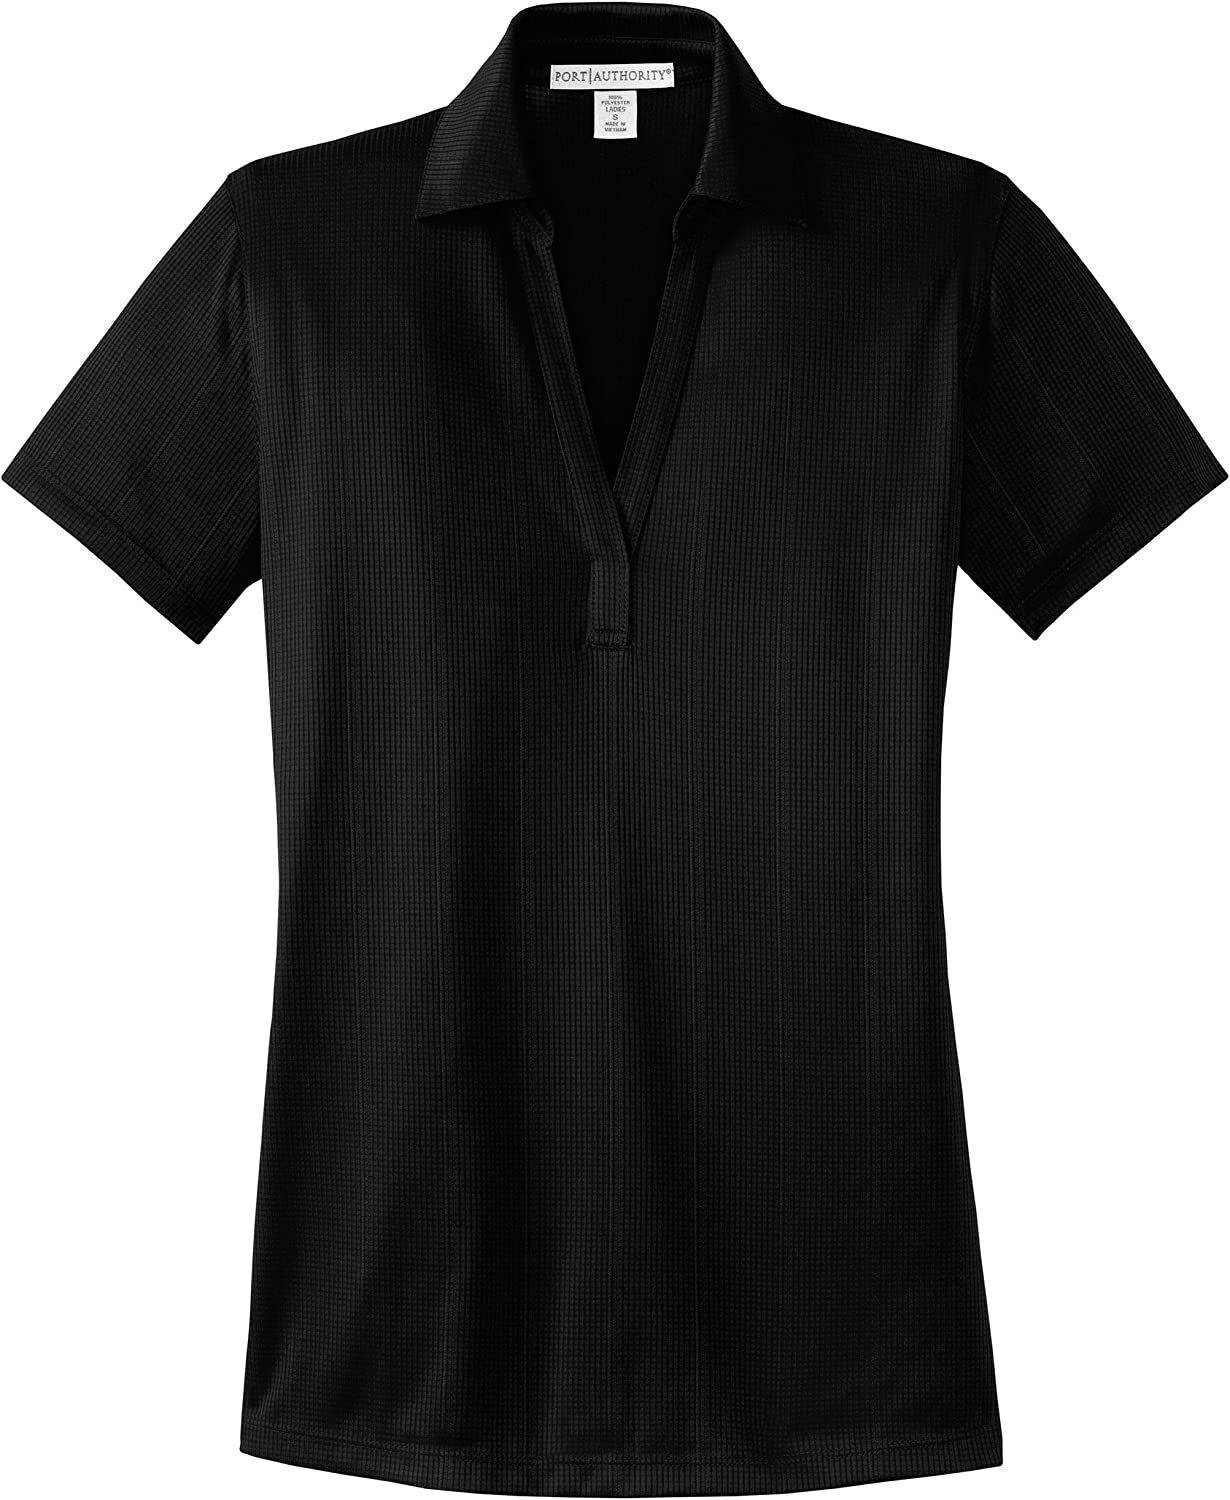 Port Authority L528 - Women's Short Sleeve Open Placket Breathable Polyester .